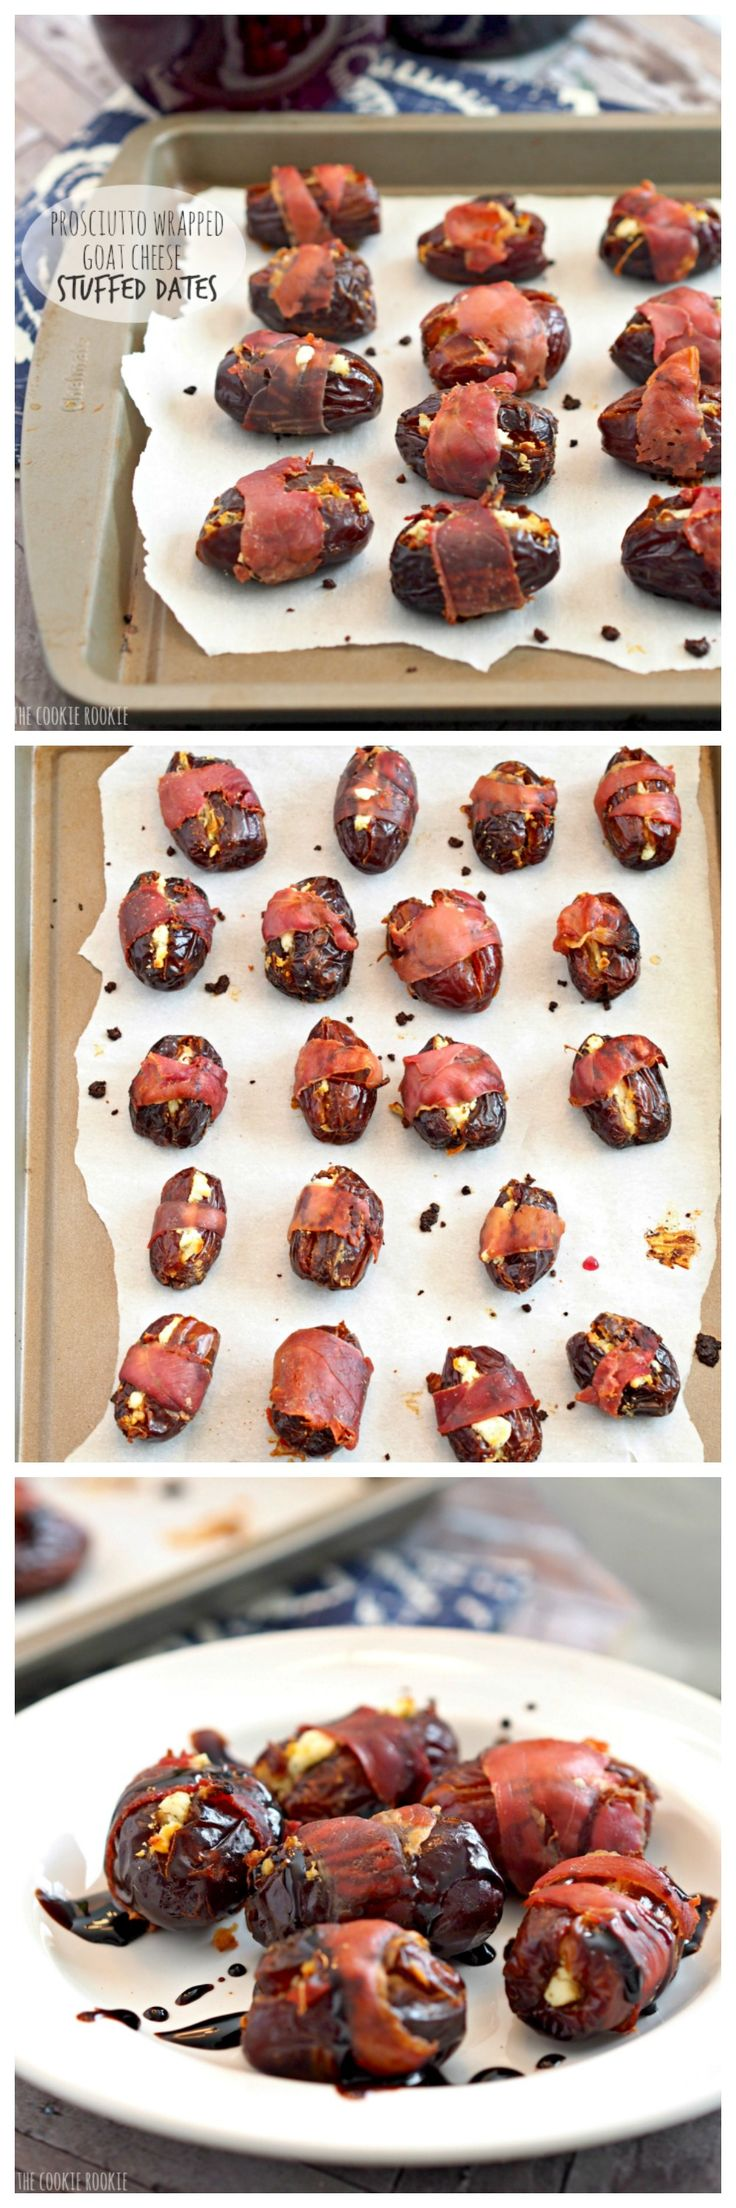 Prosciutto Wrapped Goat Cheese Stuffed Dates, the perfect party appetizer!